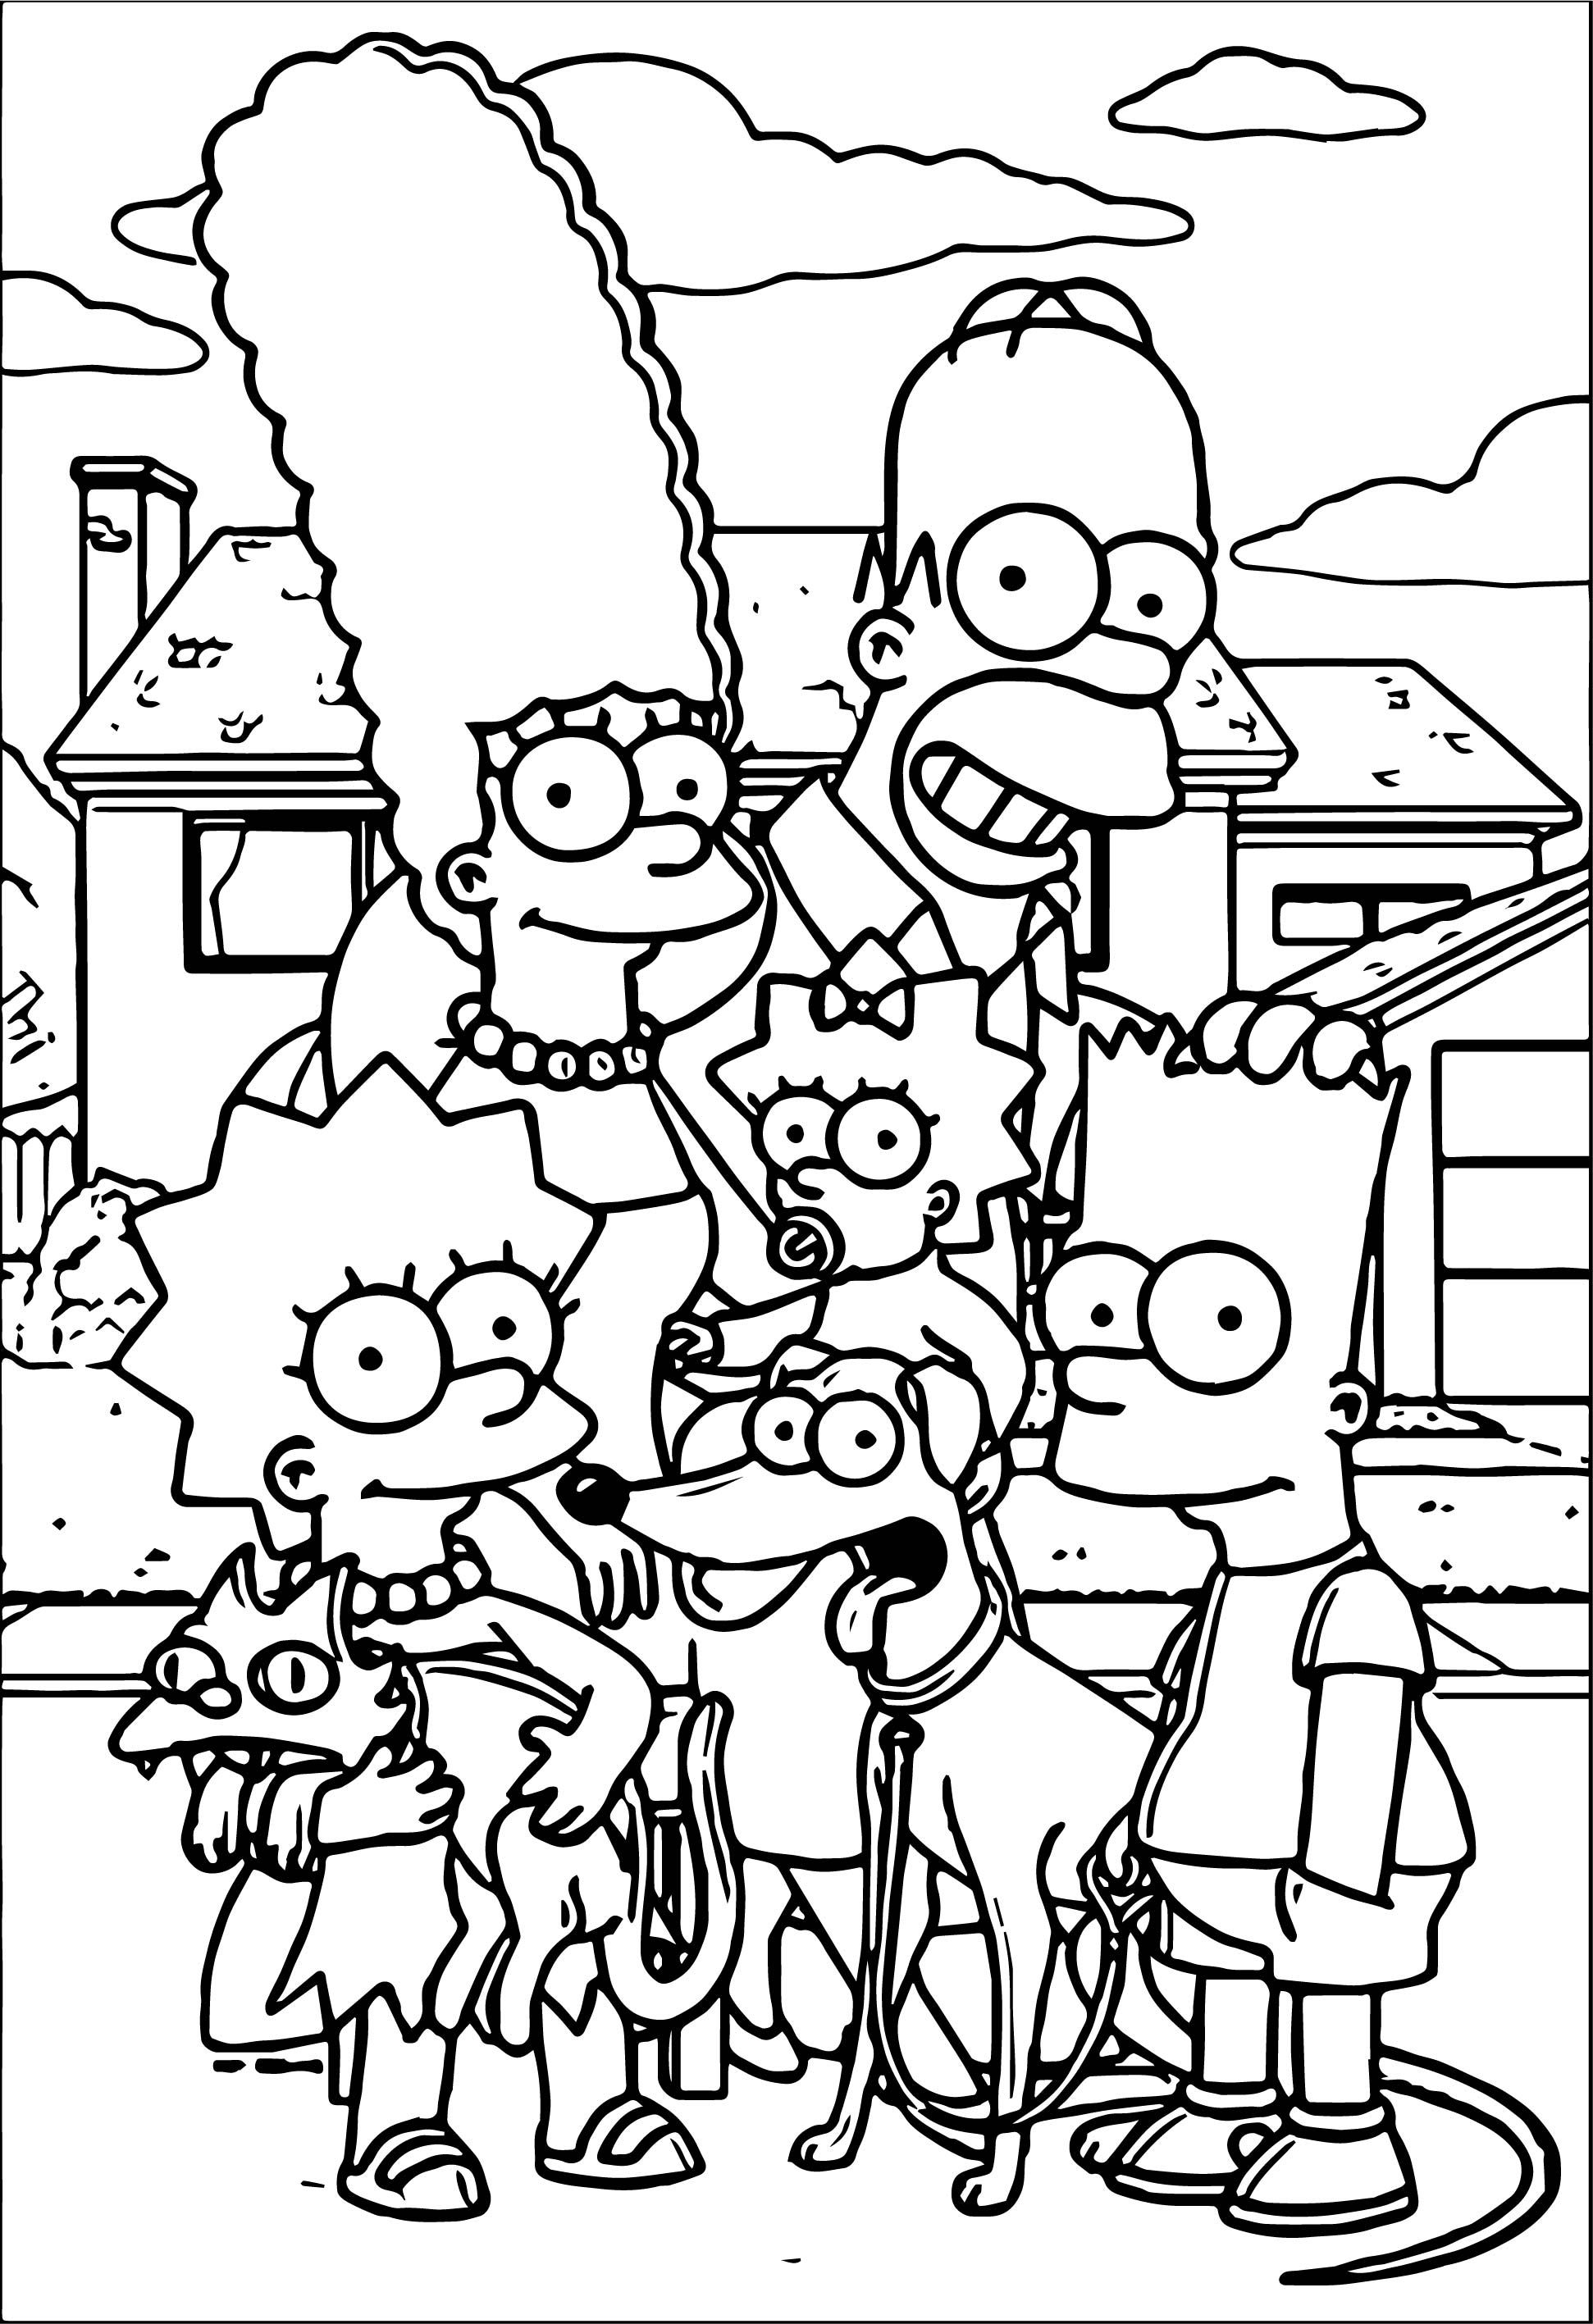 printable simpsons coloring pages the simpsons printable coloring page pages simpsons coloring printable